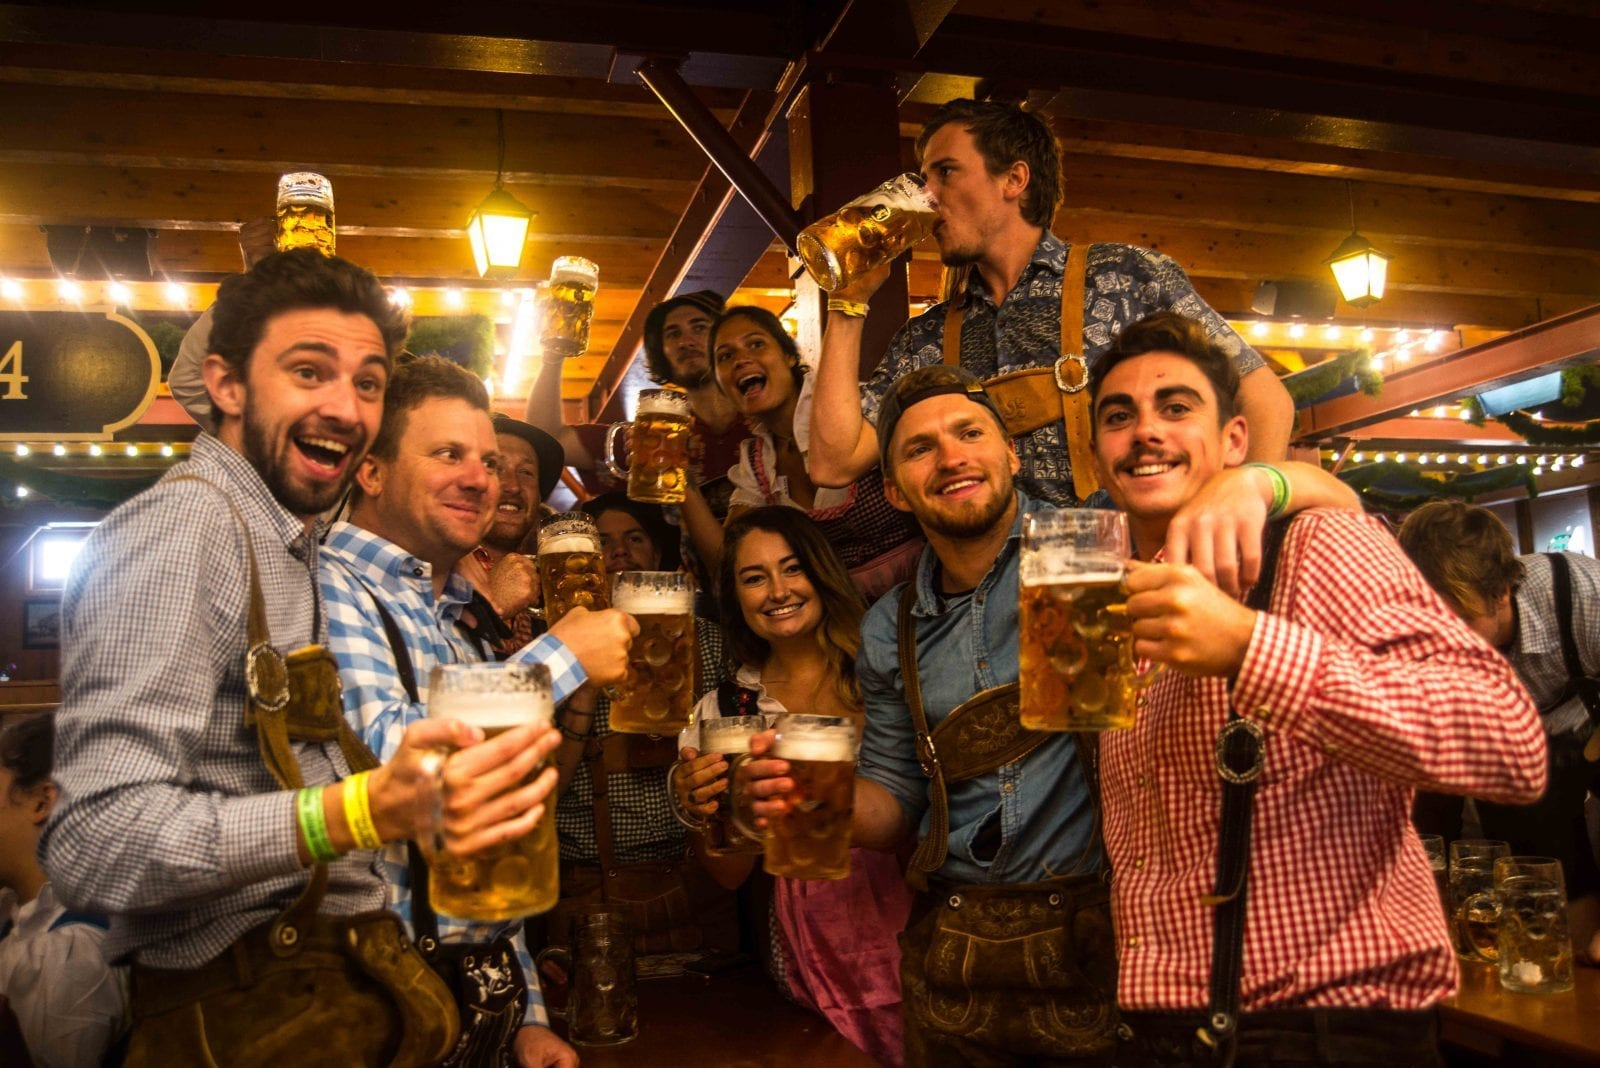 OKTOBERFEST IS THE WORLD'S BIGGEST BEER FESTIVAL